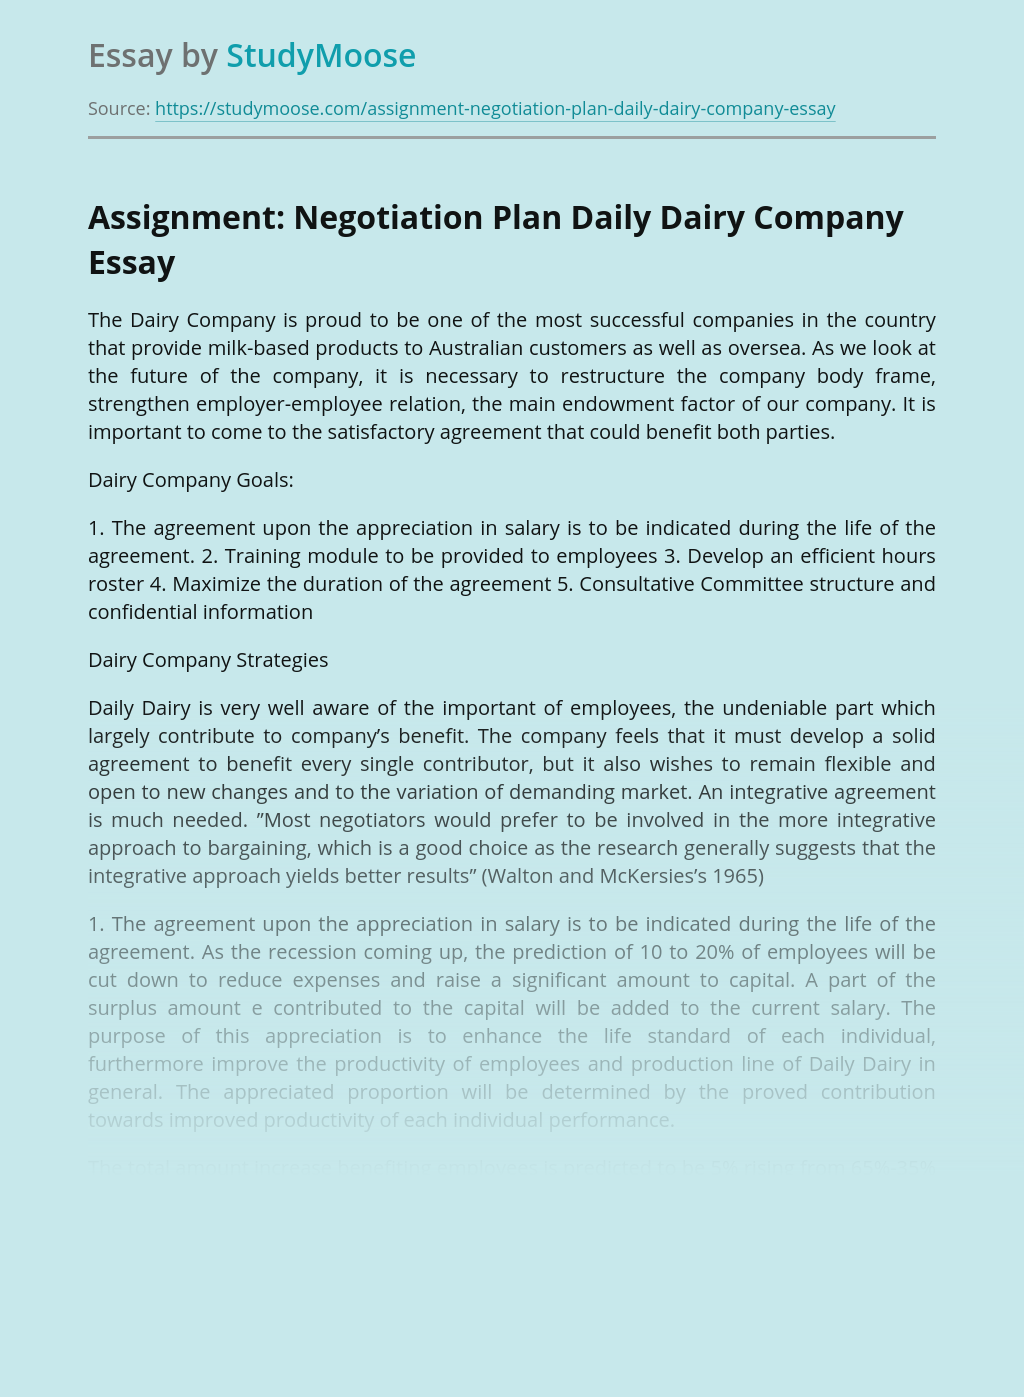 Assignment: Negotiation Plan Daily Dairy Company